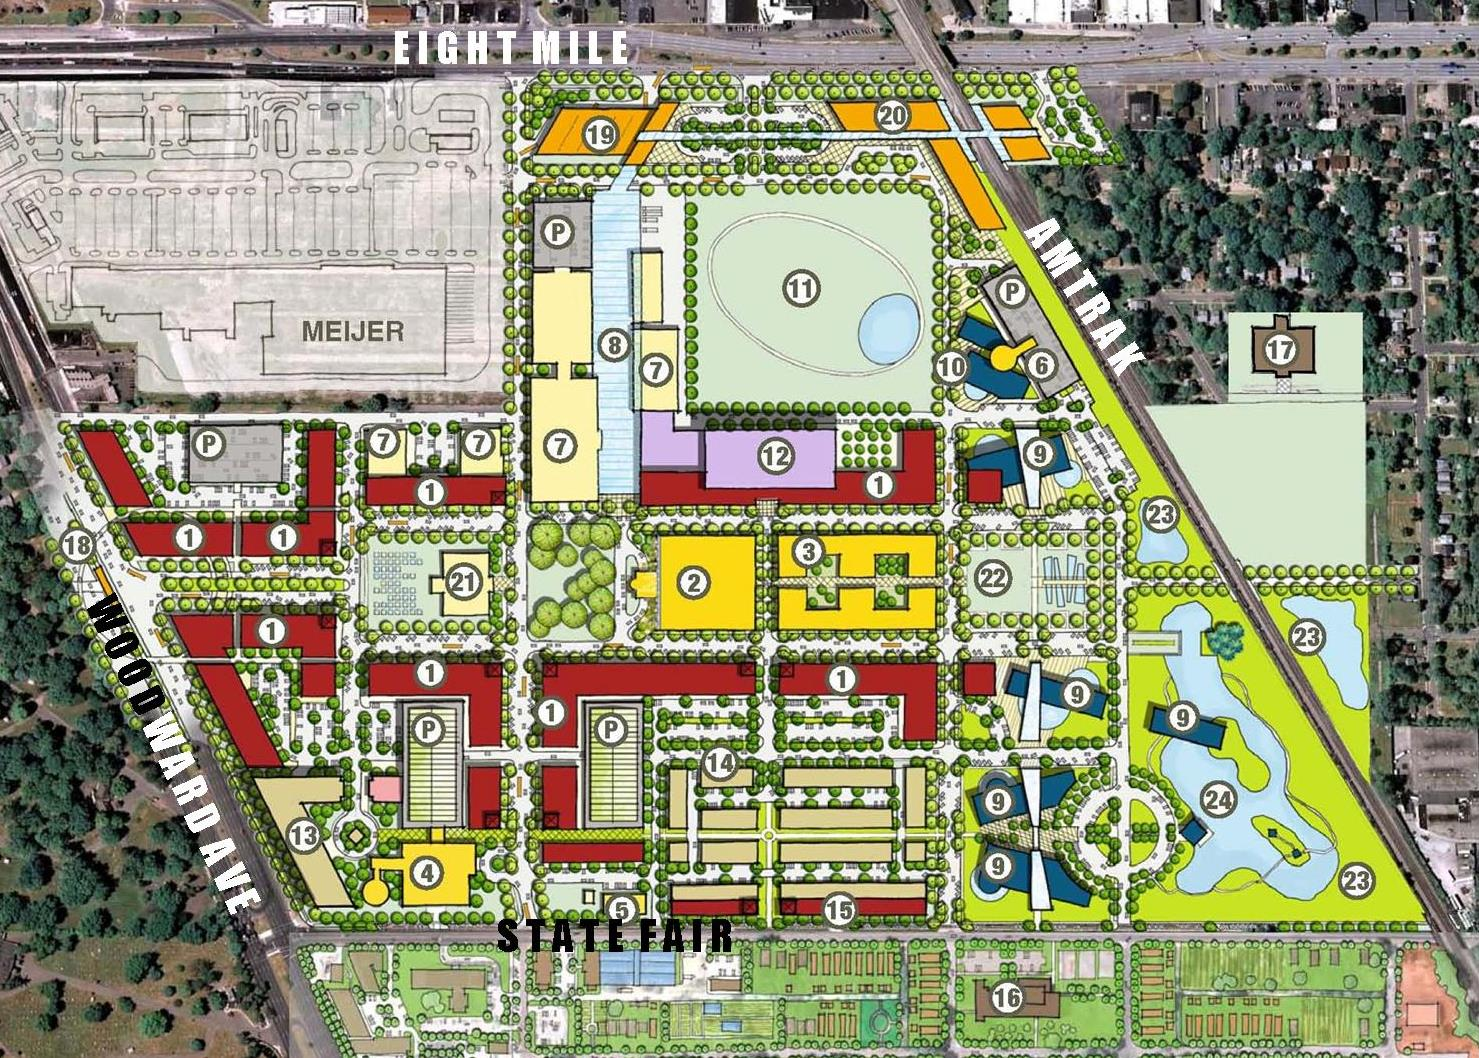 Destinations conceived for the Michigan State Fairgrounds by METAexpo